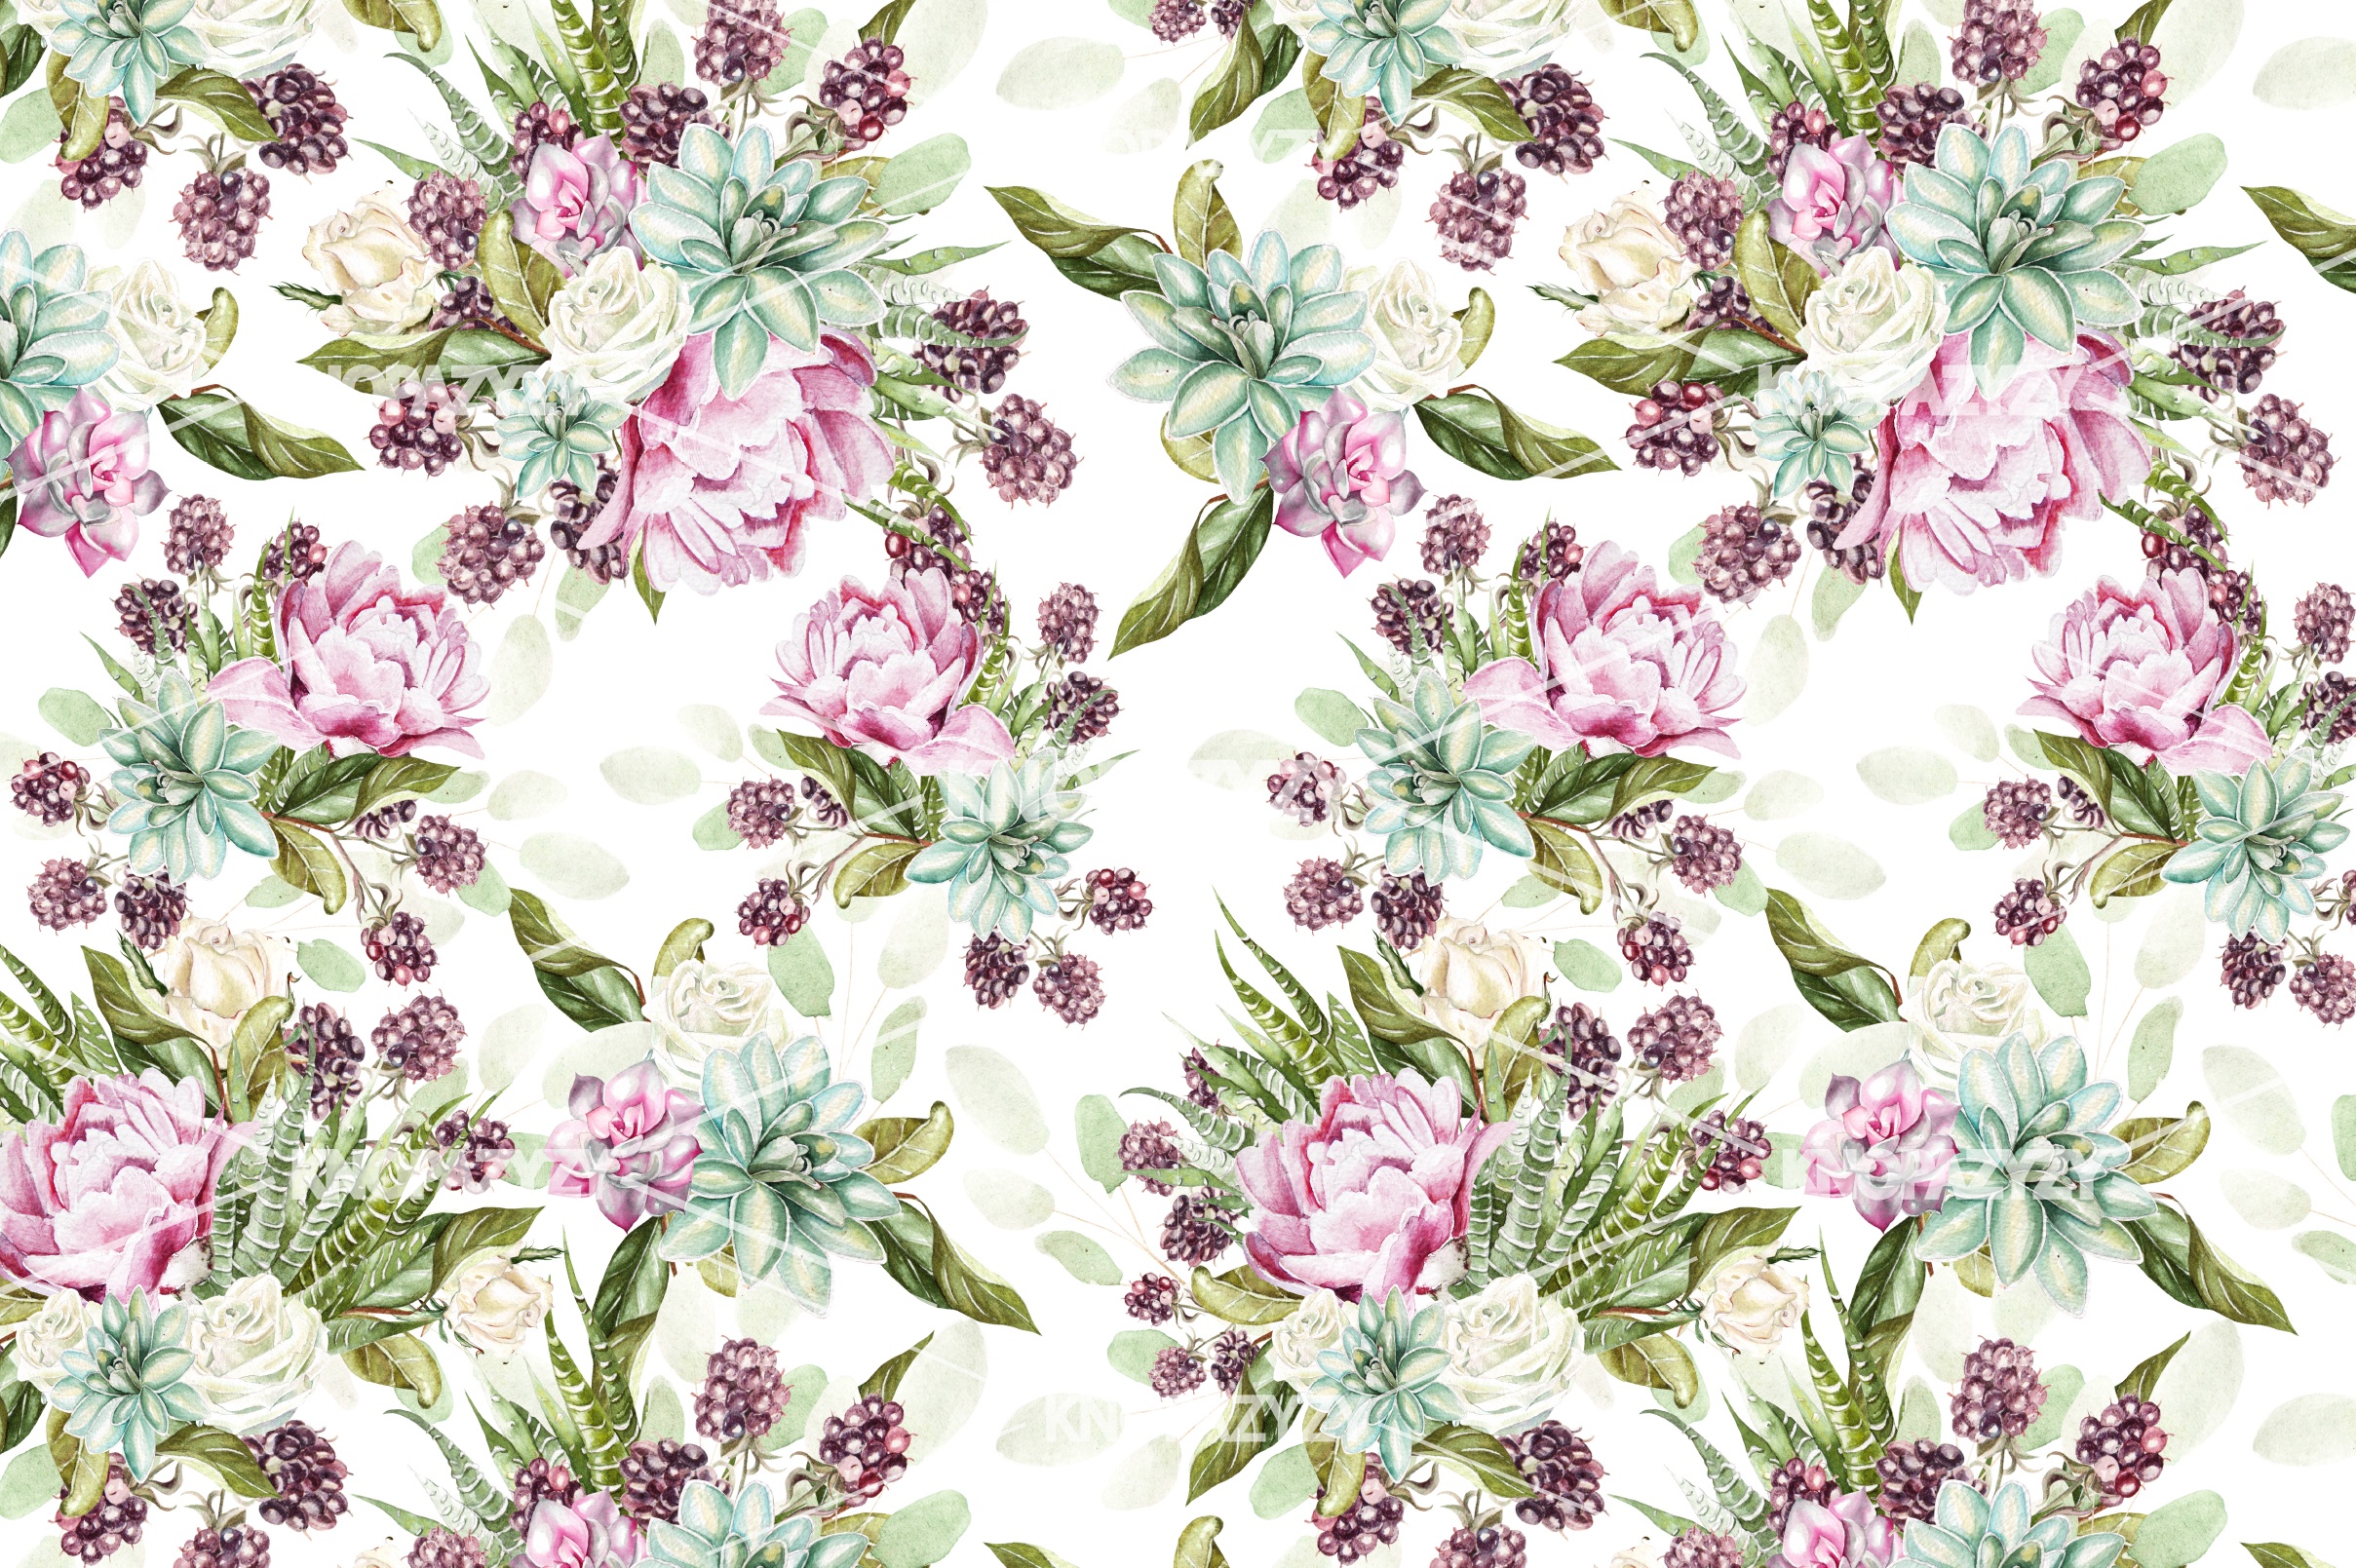 14 Hand drawn watercolor patterns example image 14